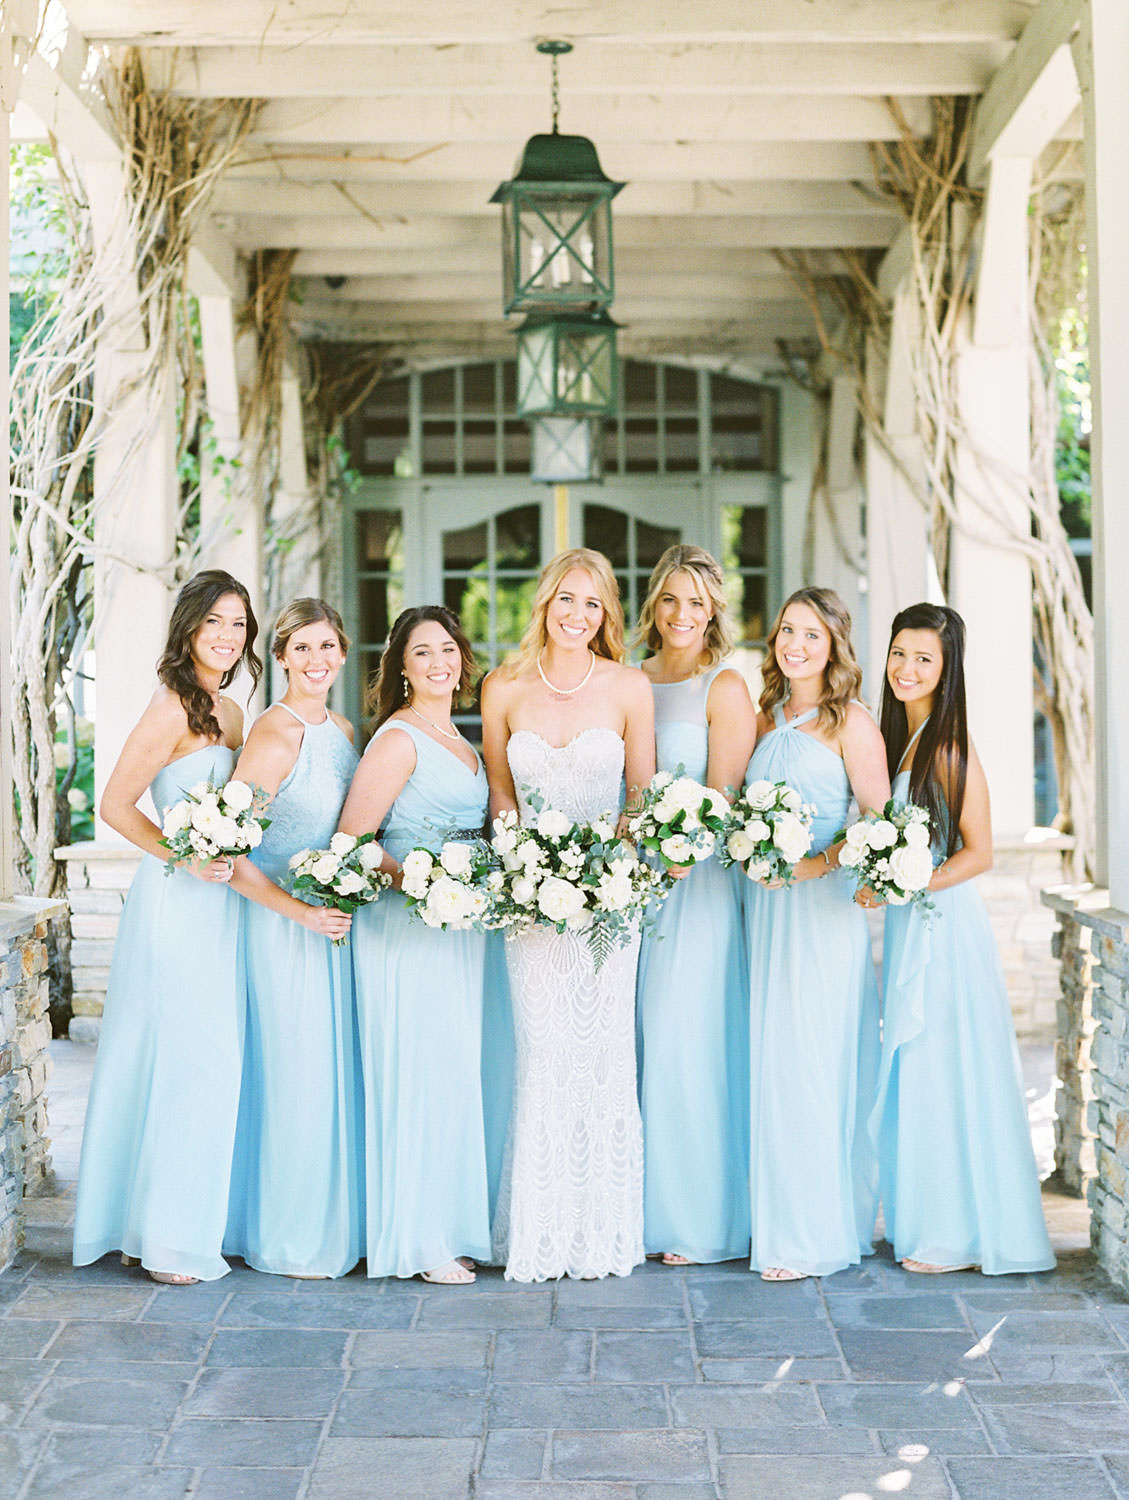 Bride with green and ivory bouquet surrounded by bridesmaids wearing pale blue gowns shot on film, Del Mar Country Club Wedding by Cavin Elizabeth Photography